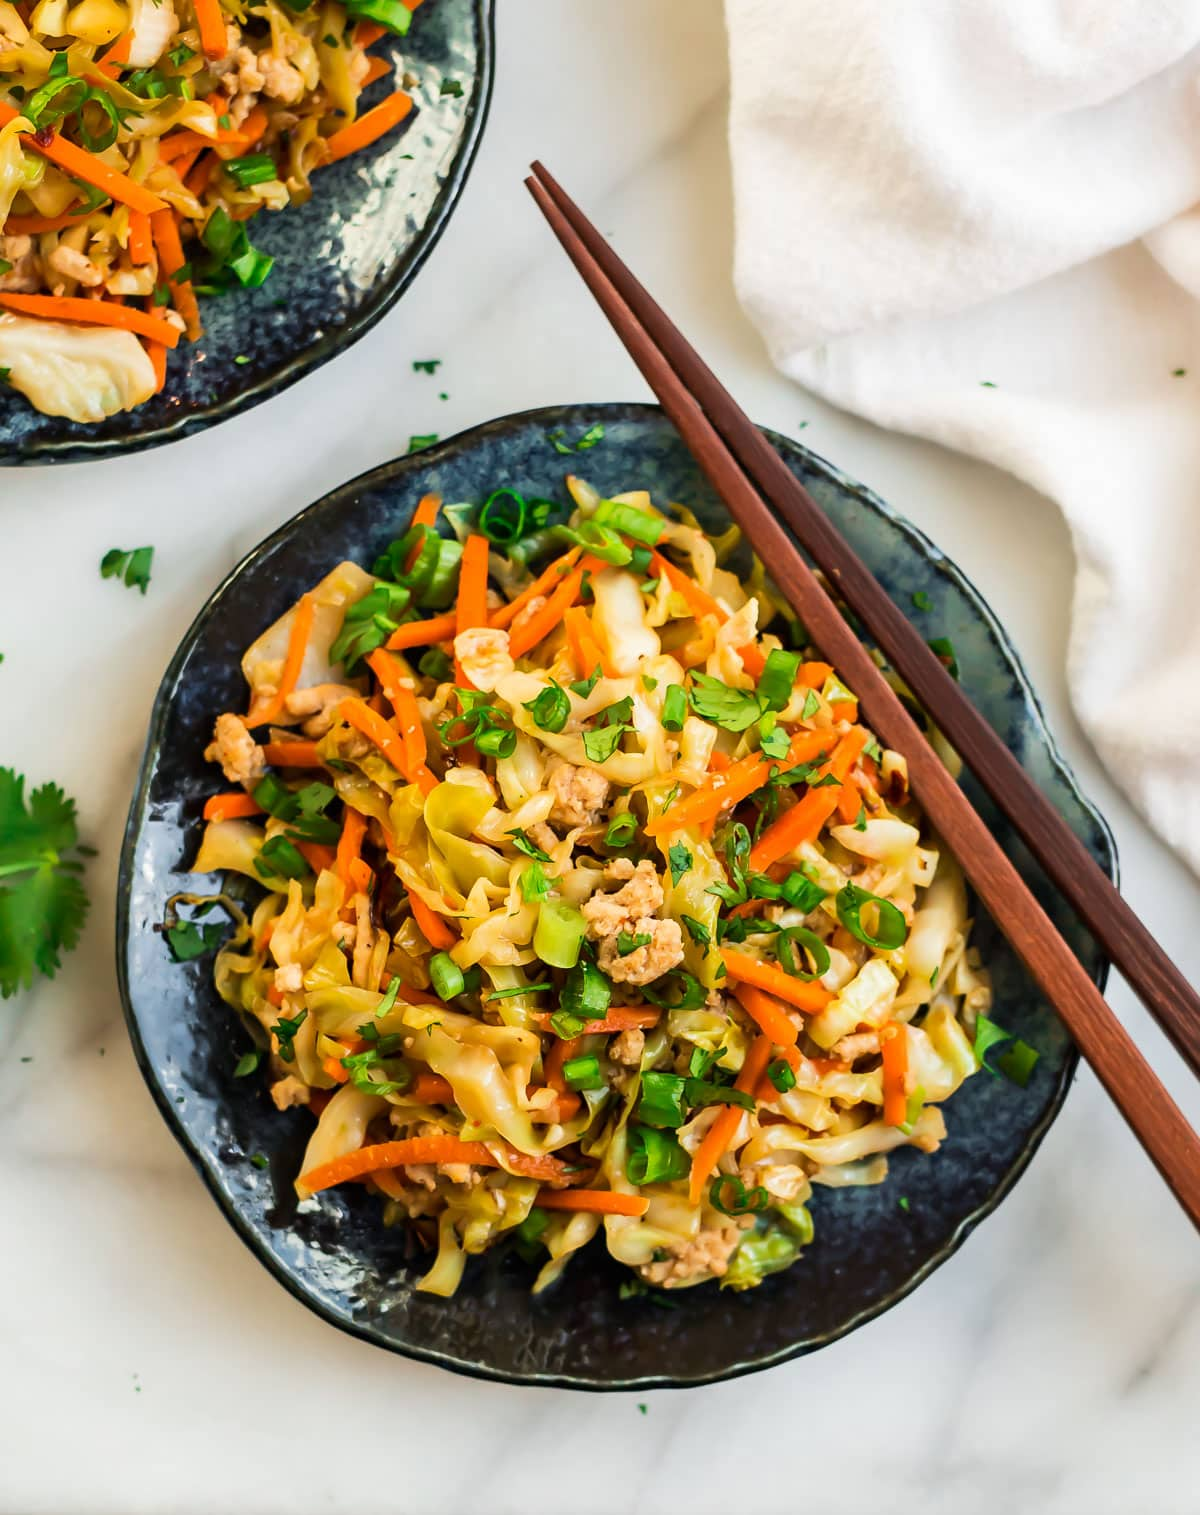 Chicken and cabbage stir fry on a plate